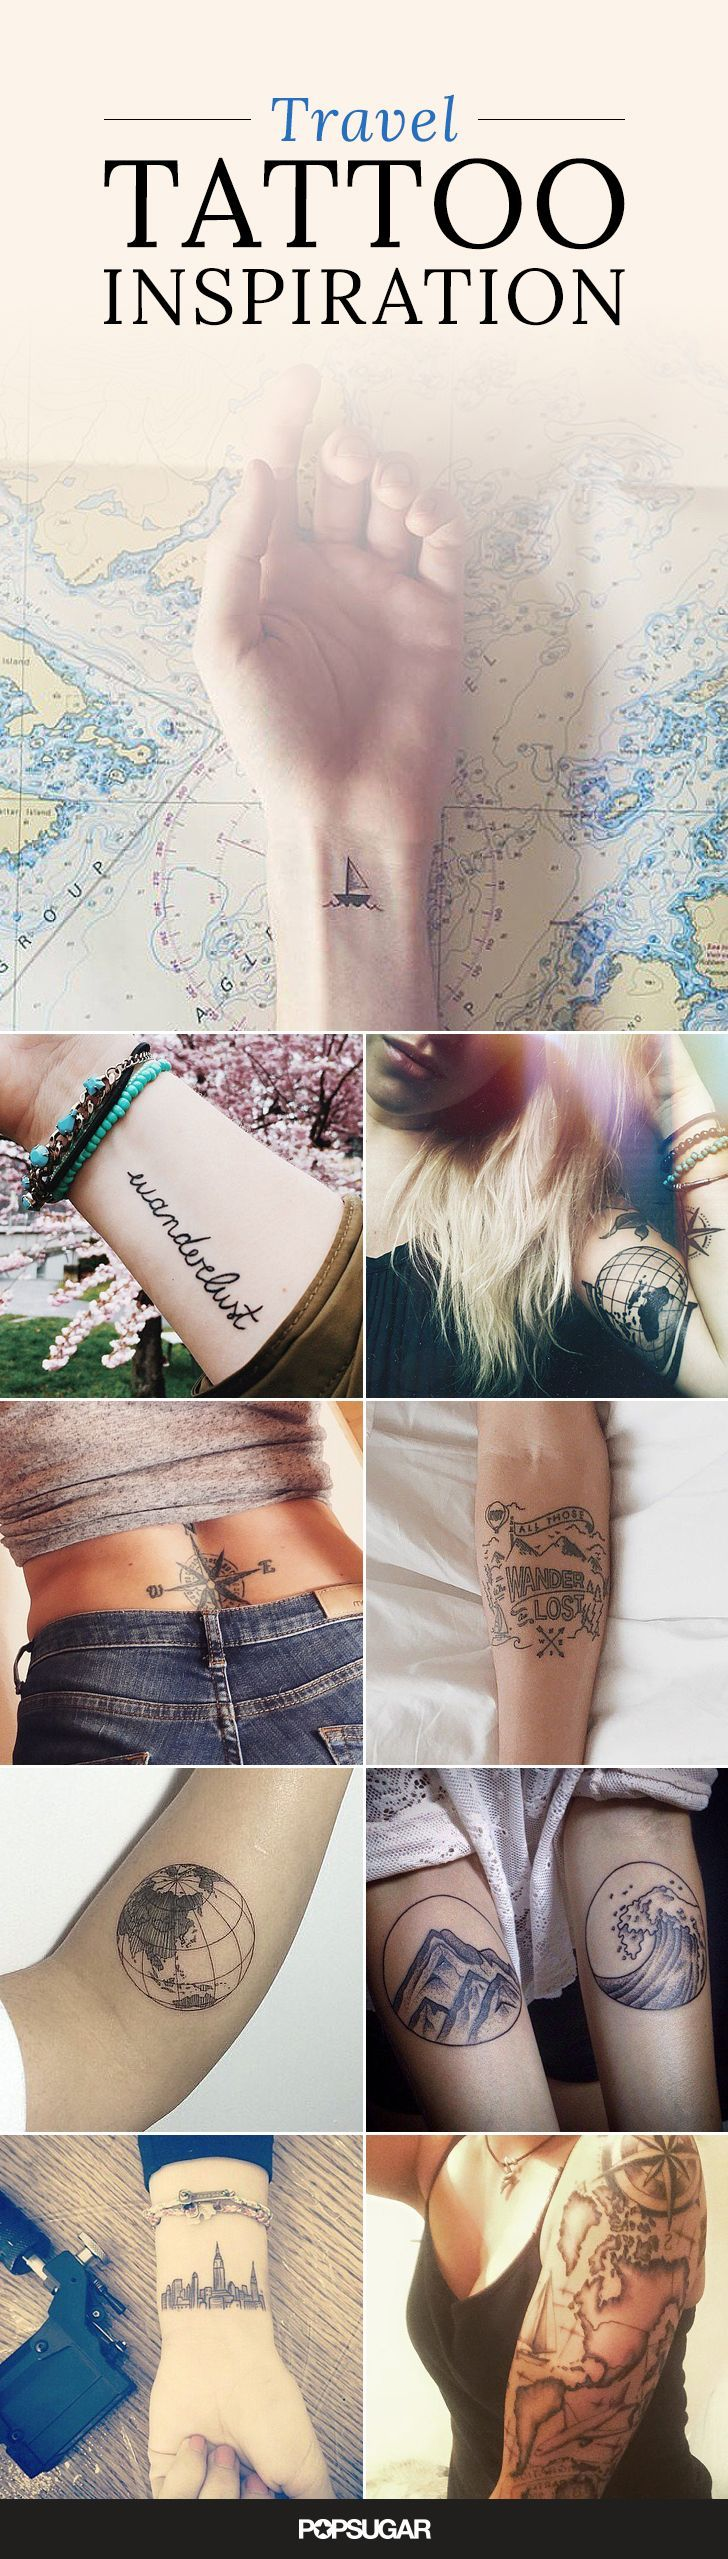 best images about tattoo inspirations on pinterest compass